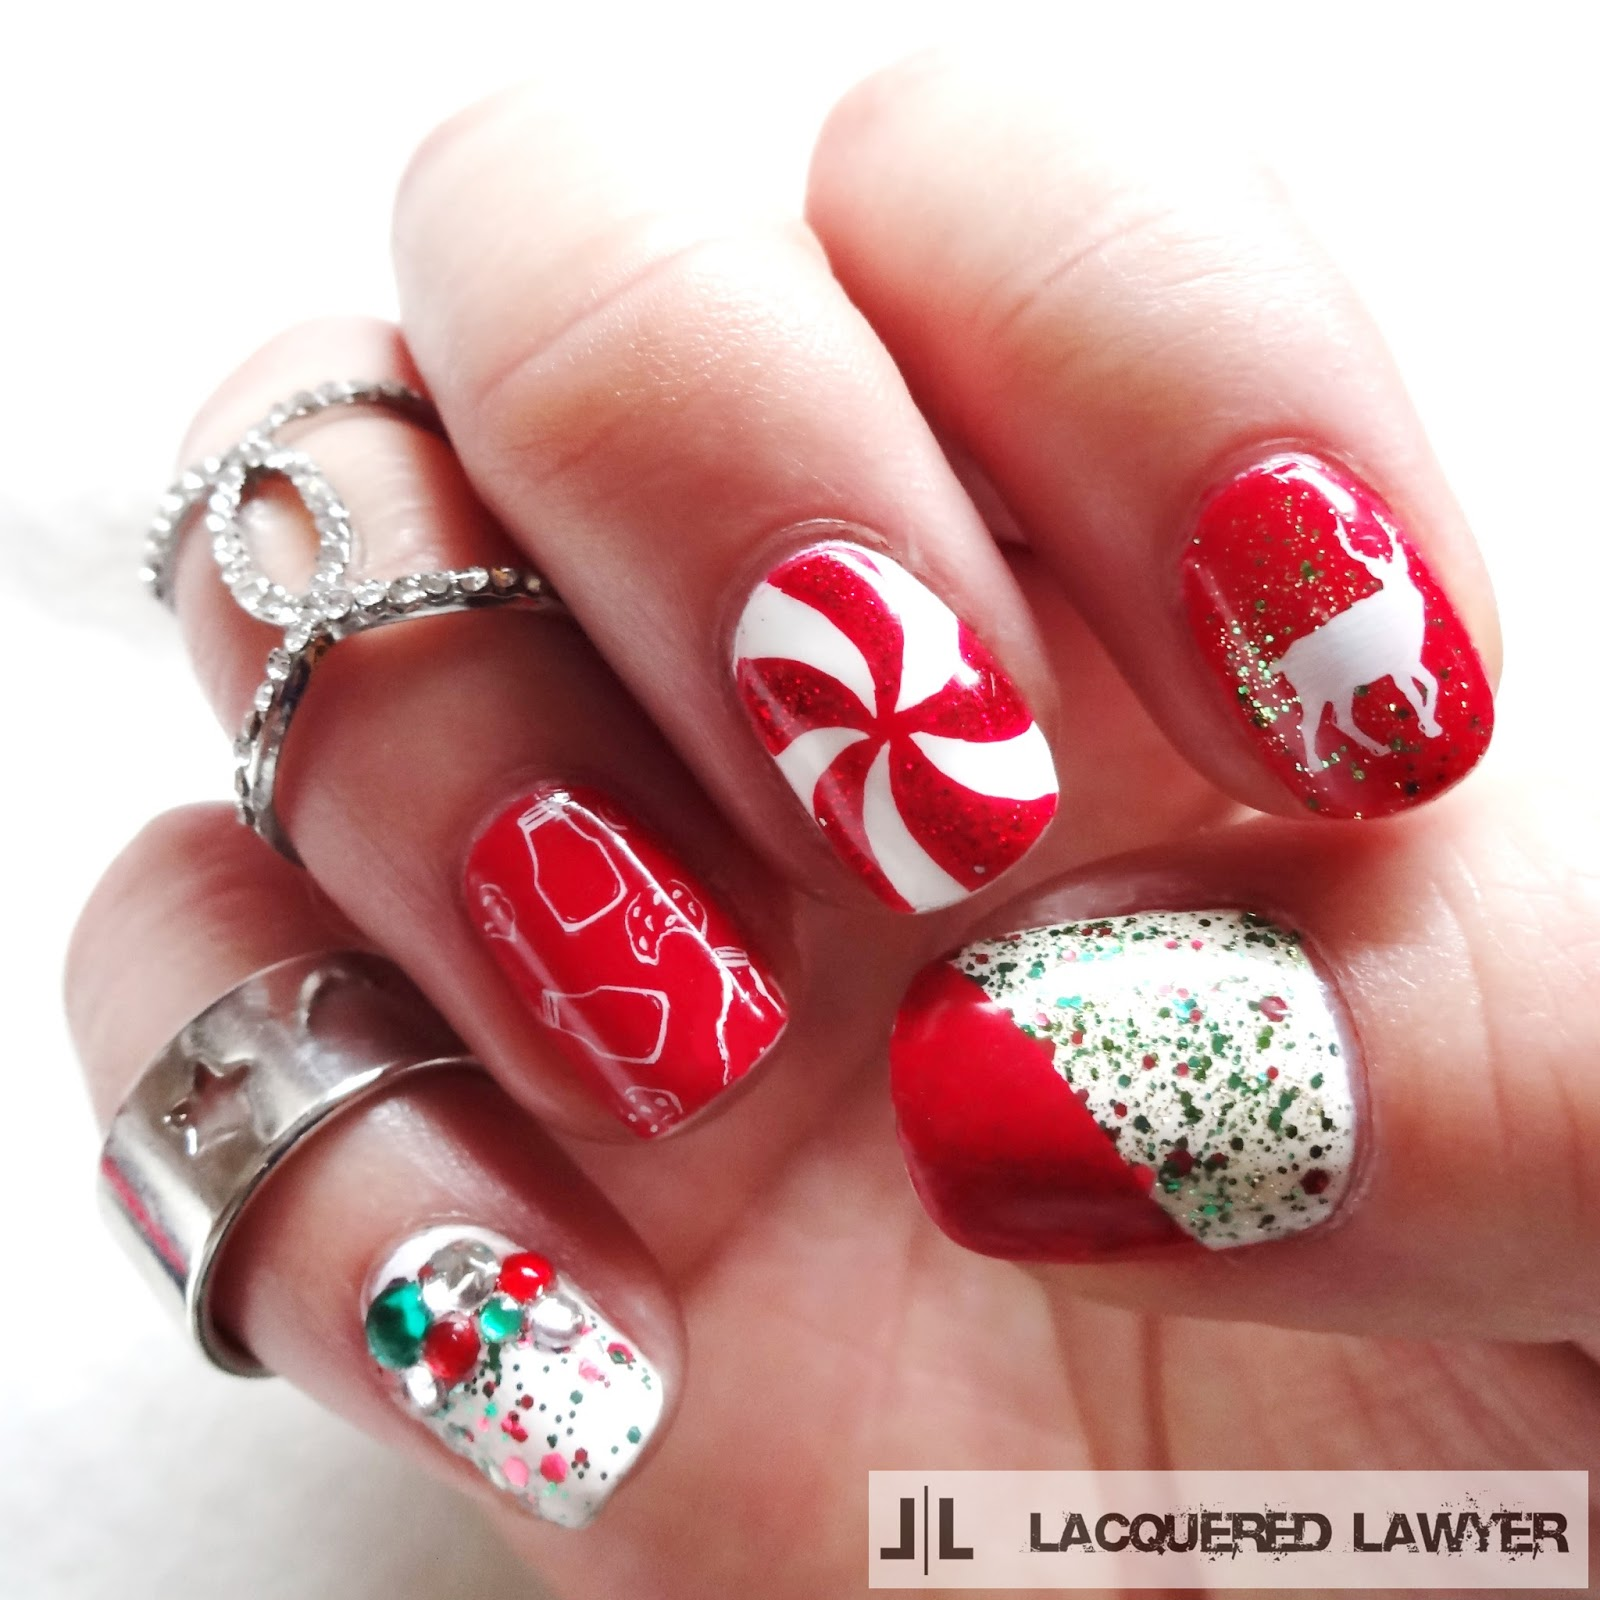 Lacquered Lawyer | Nail Art Blog: Merry Christmas